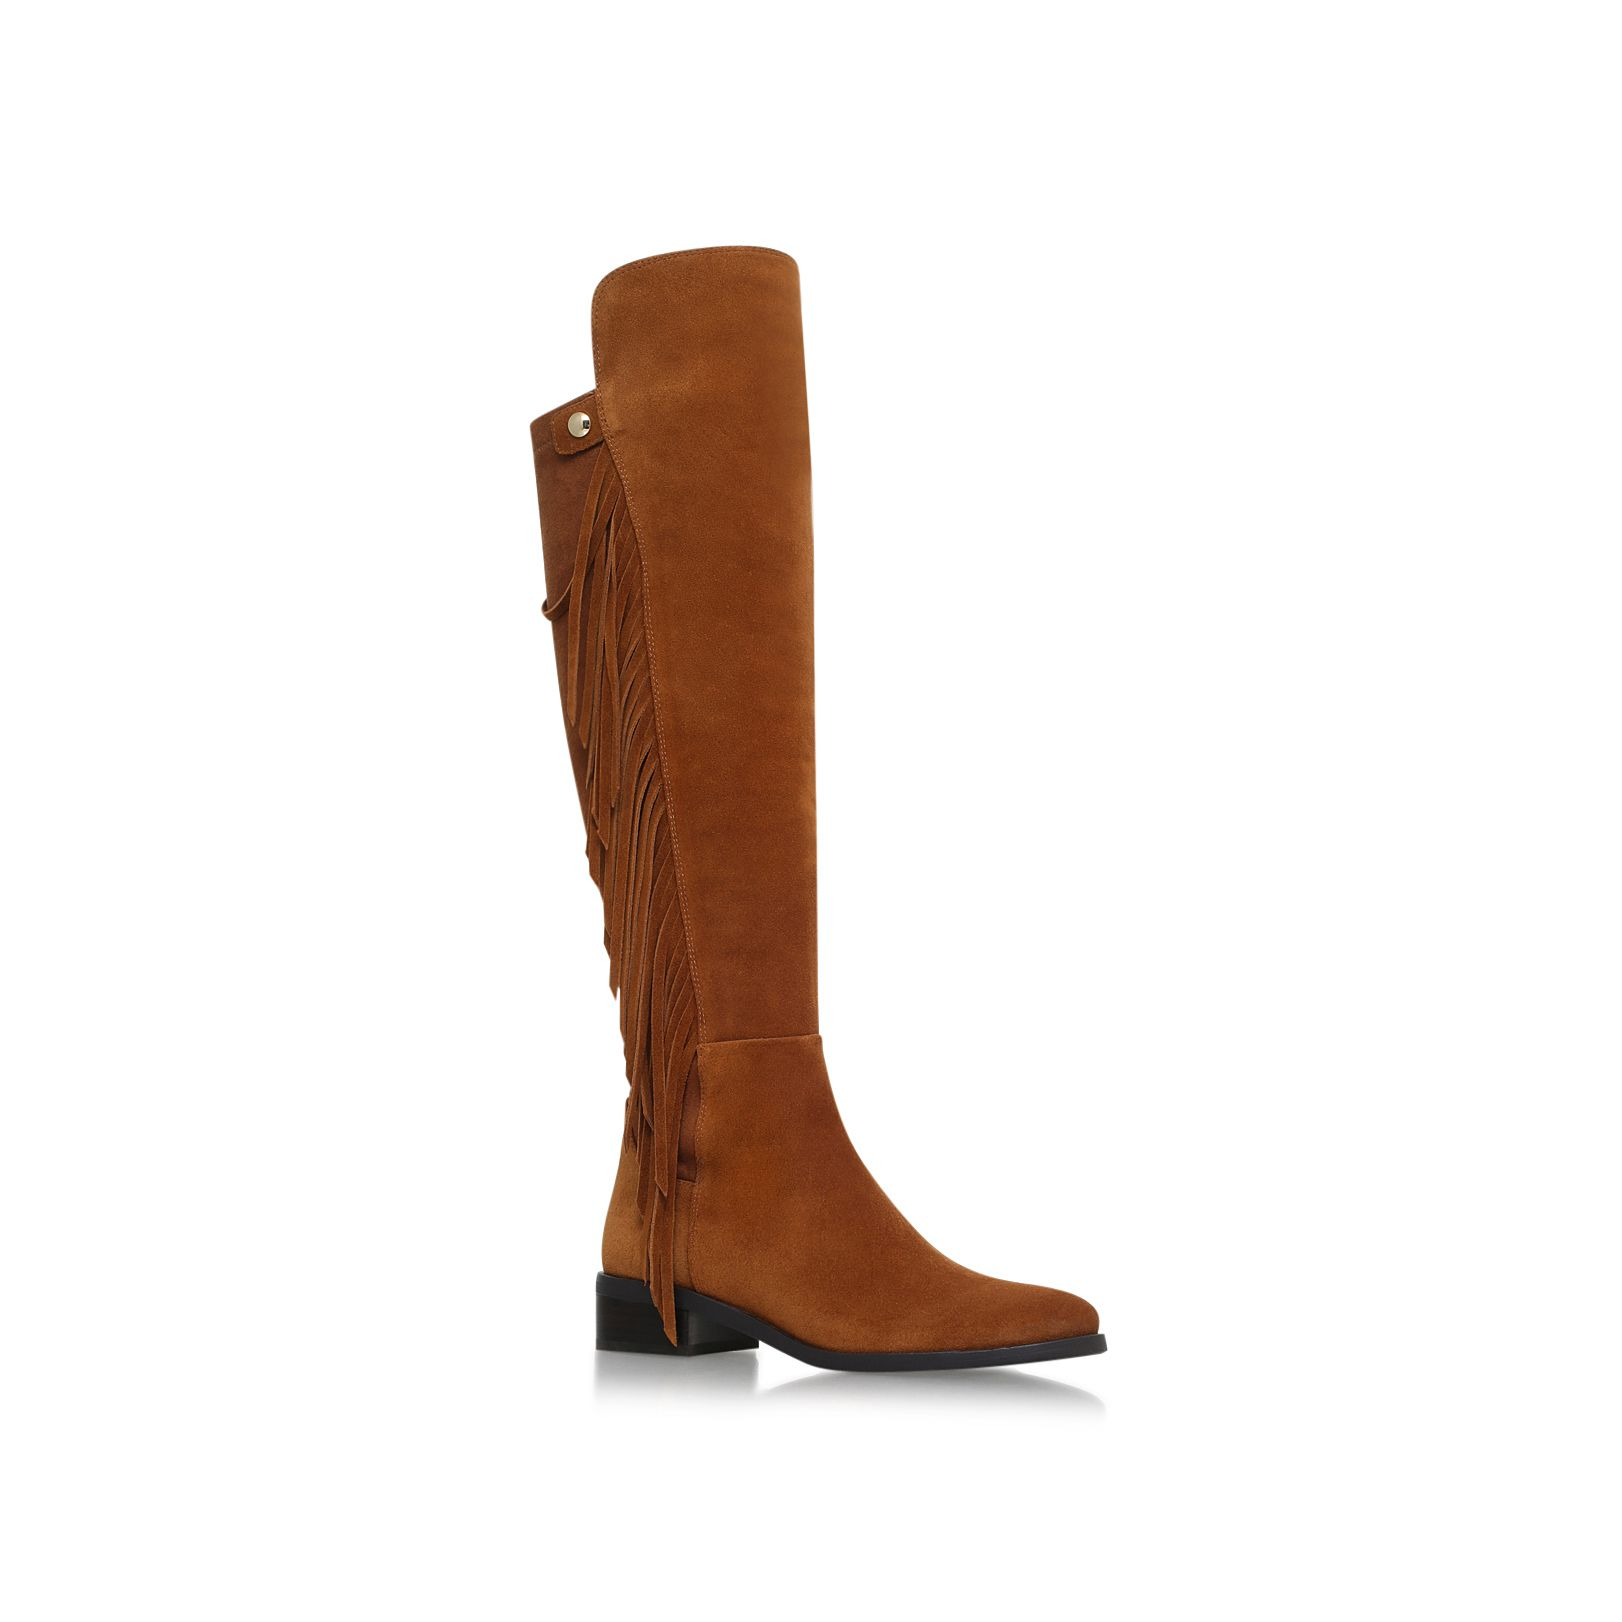 Vince Camuto Vince Camuto Sentina low heel knee boots, Tan